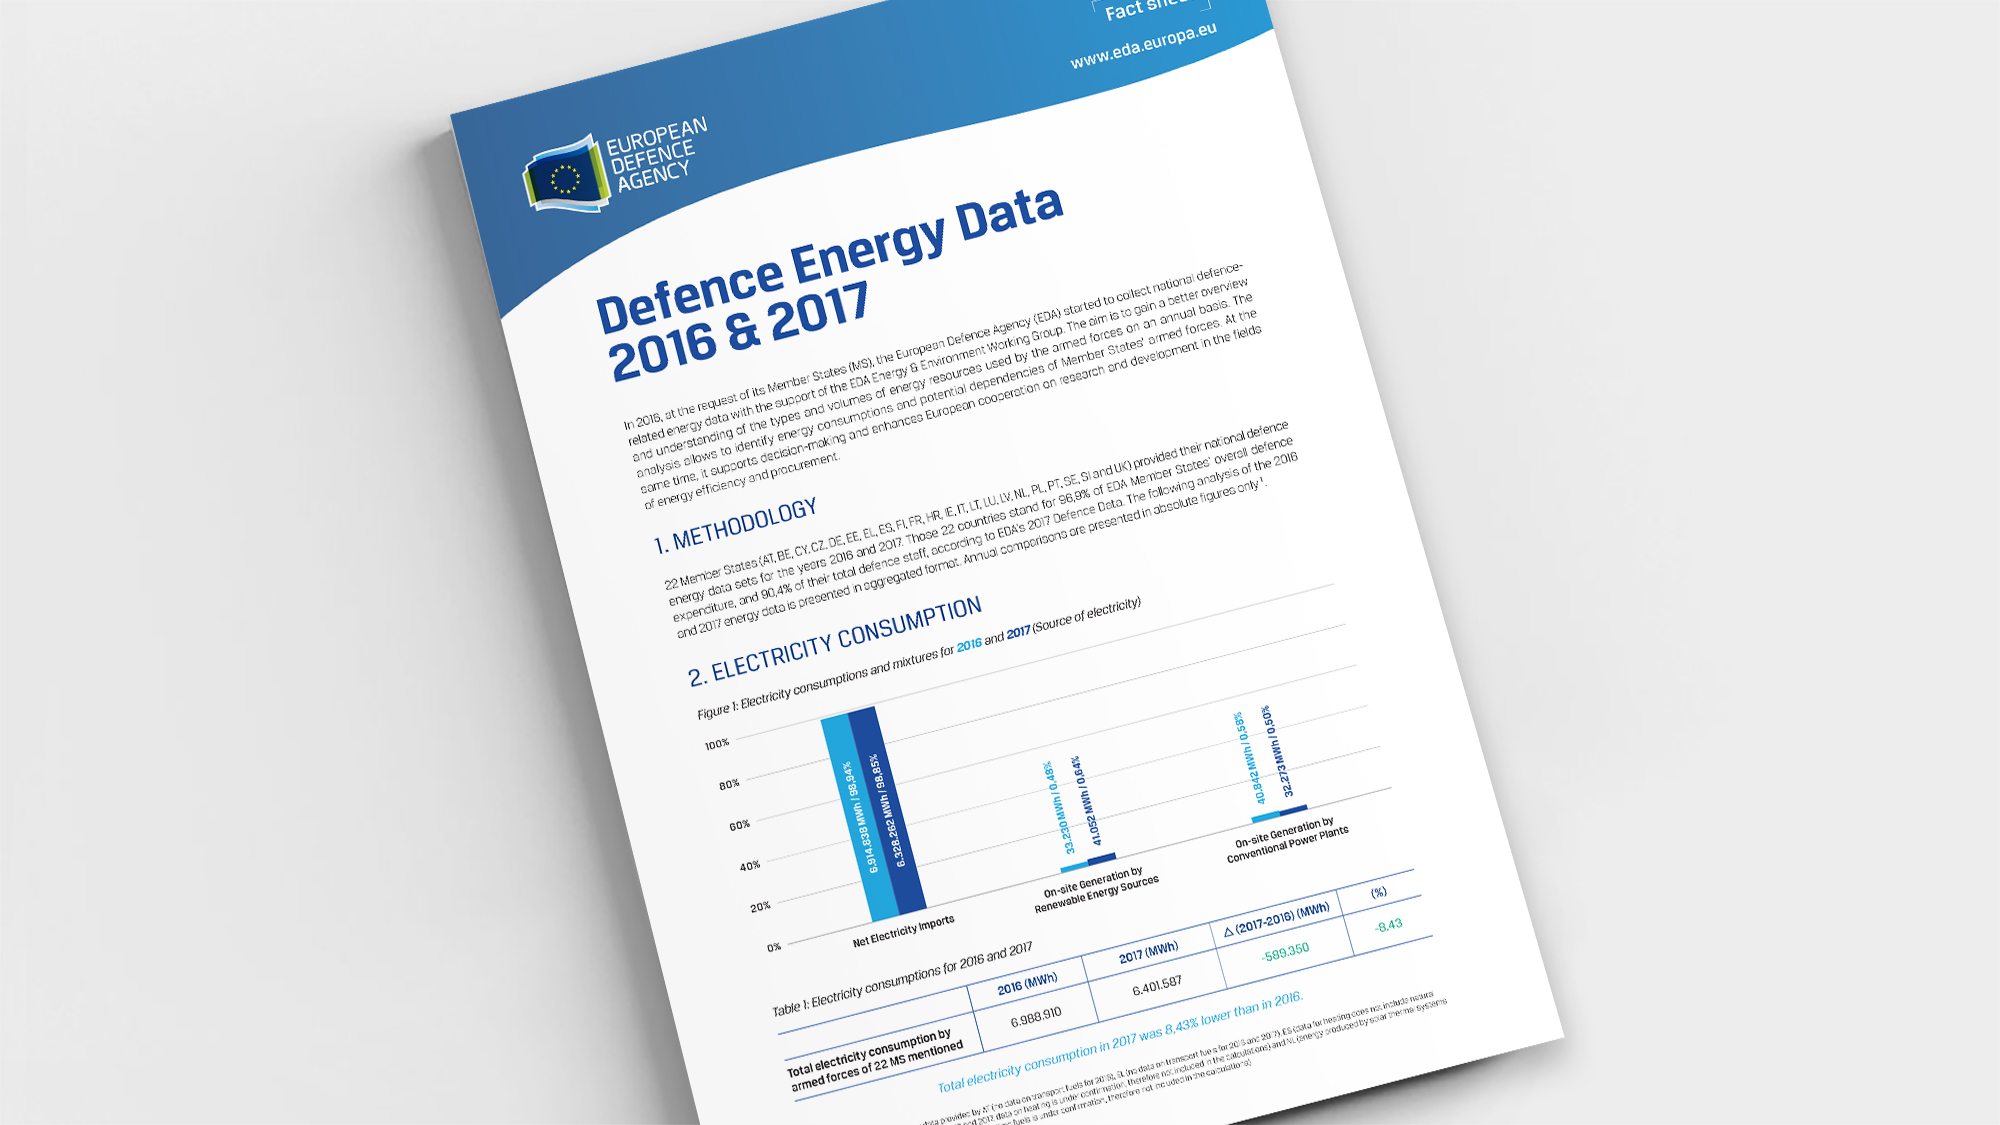 Factsheet Defence Energy Data 2016 & 2017